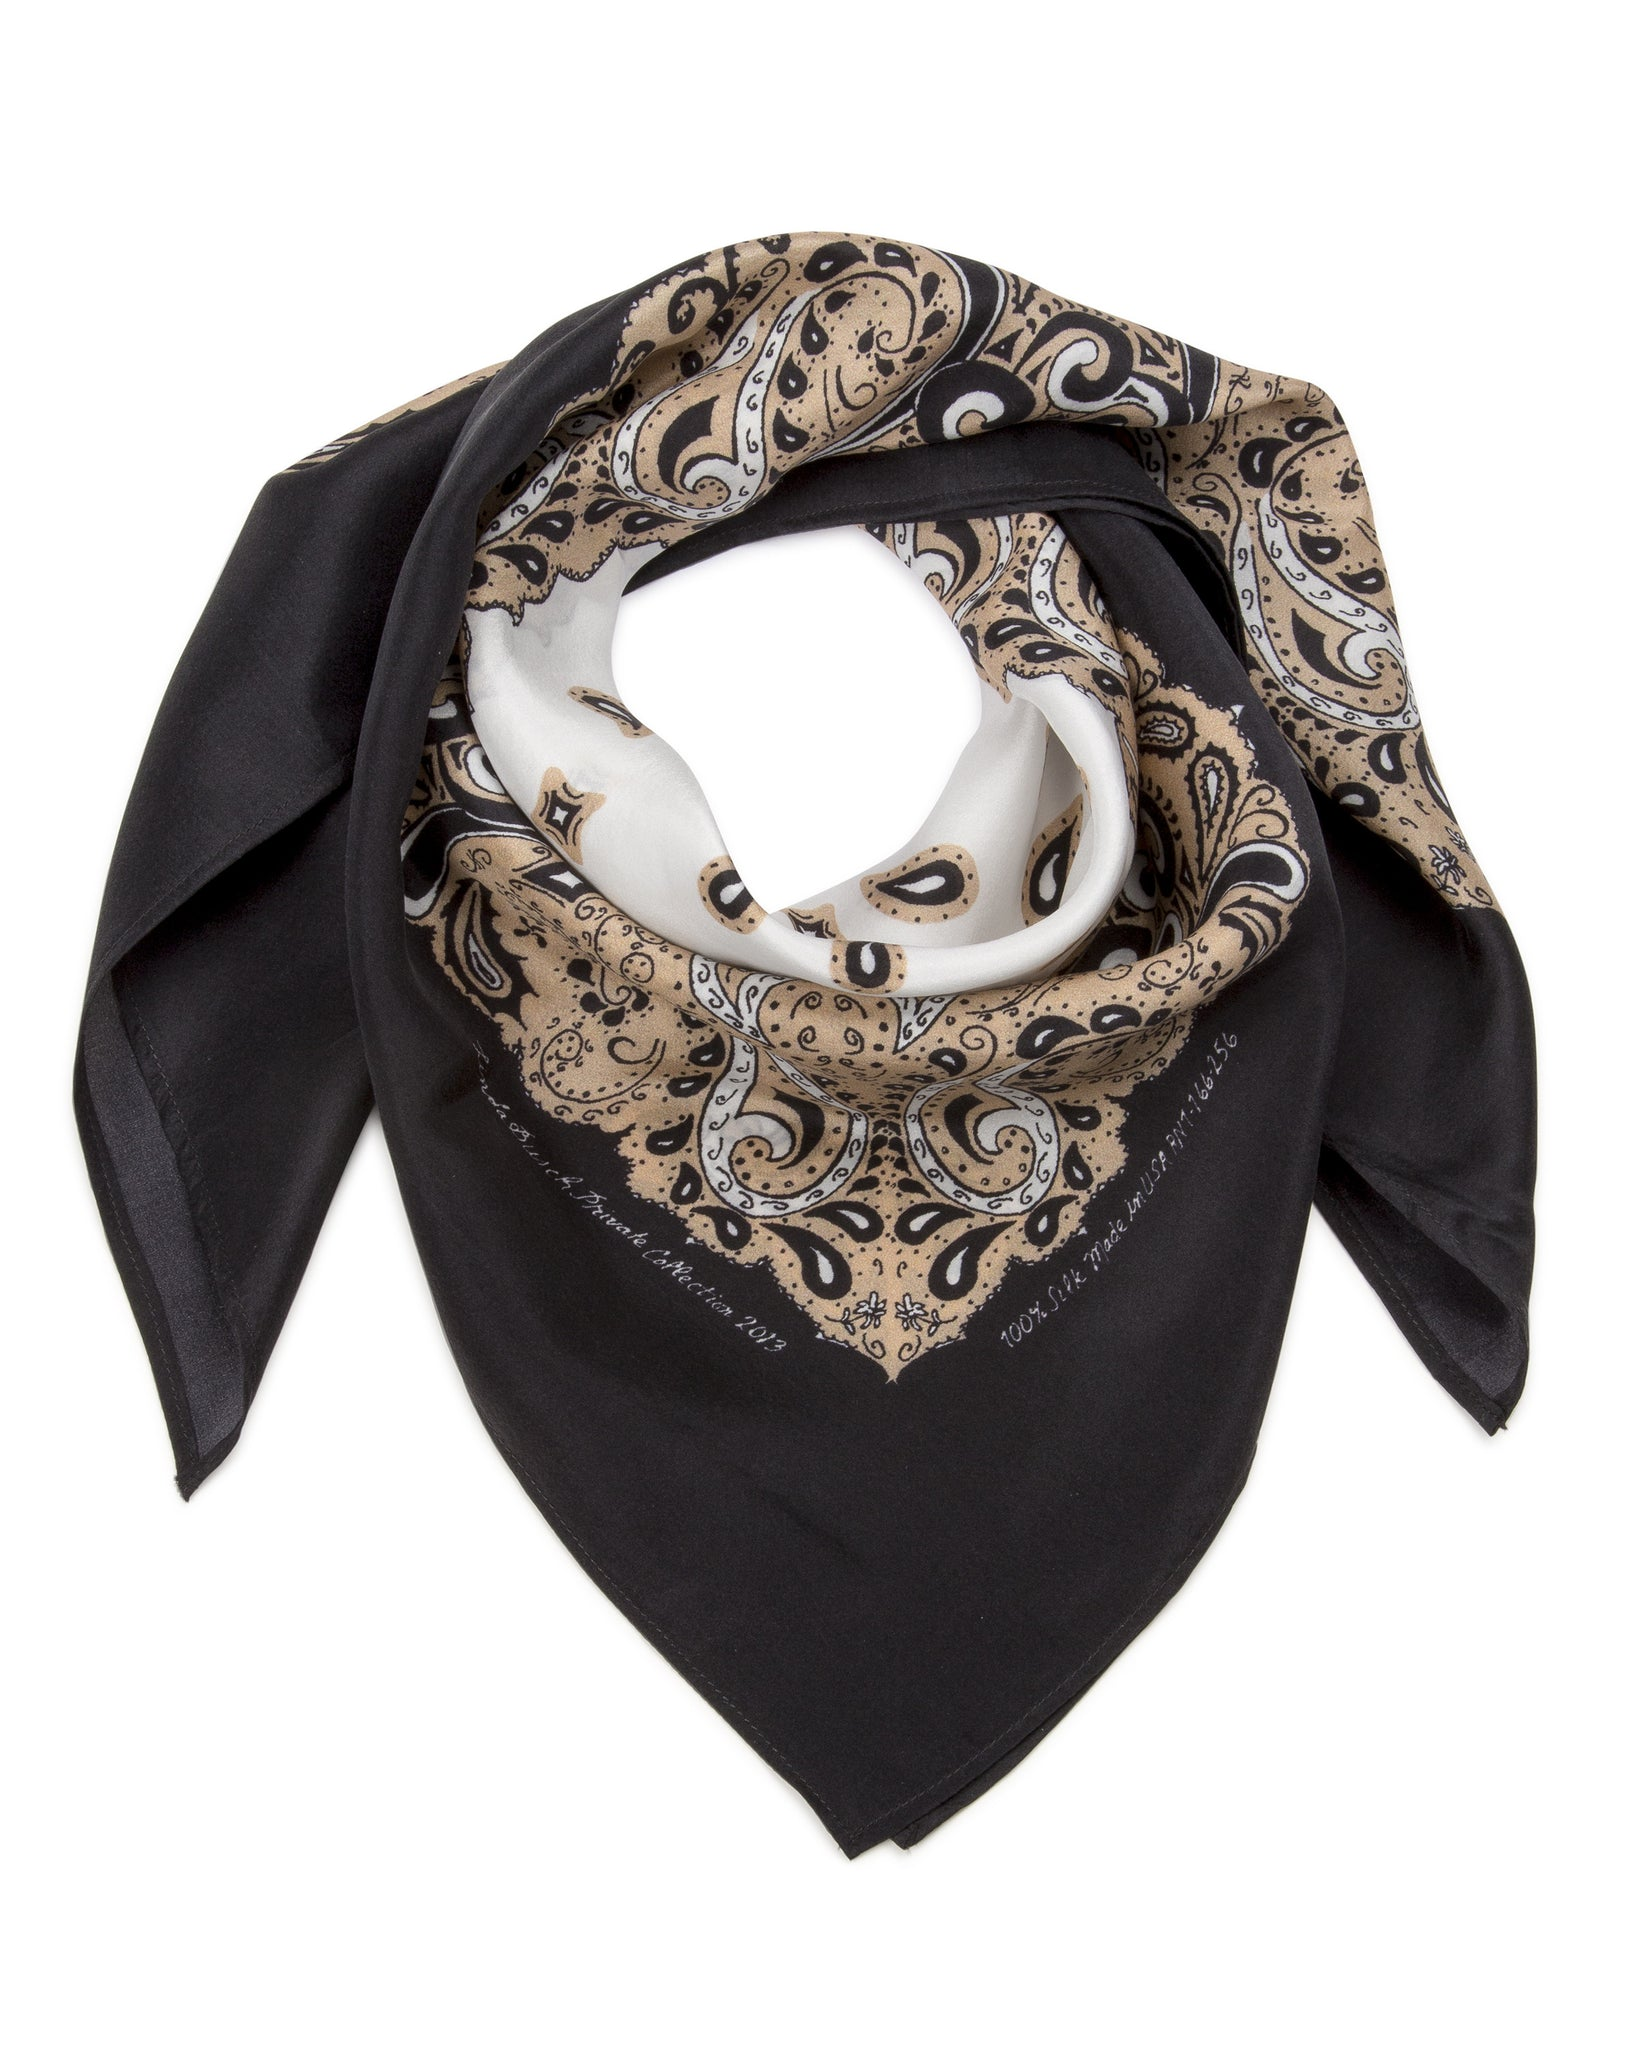 SAMPLE SALE-Silk Bandanna in Sand, Black, White